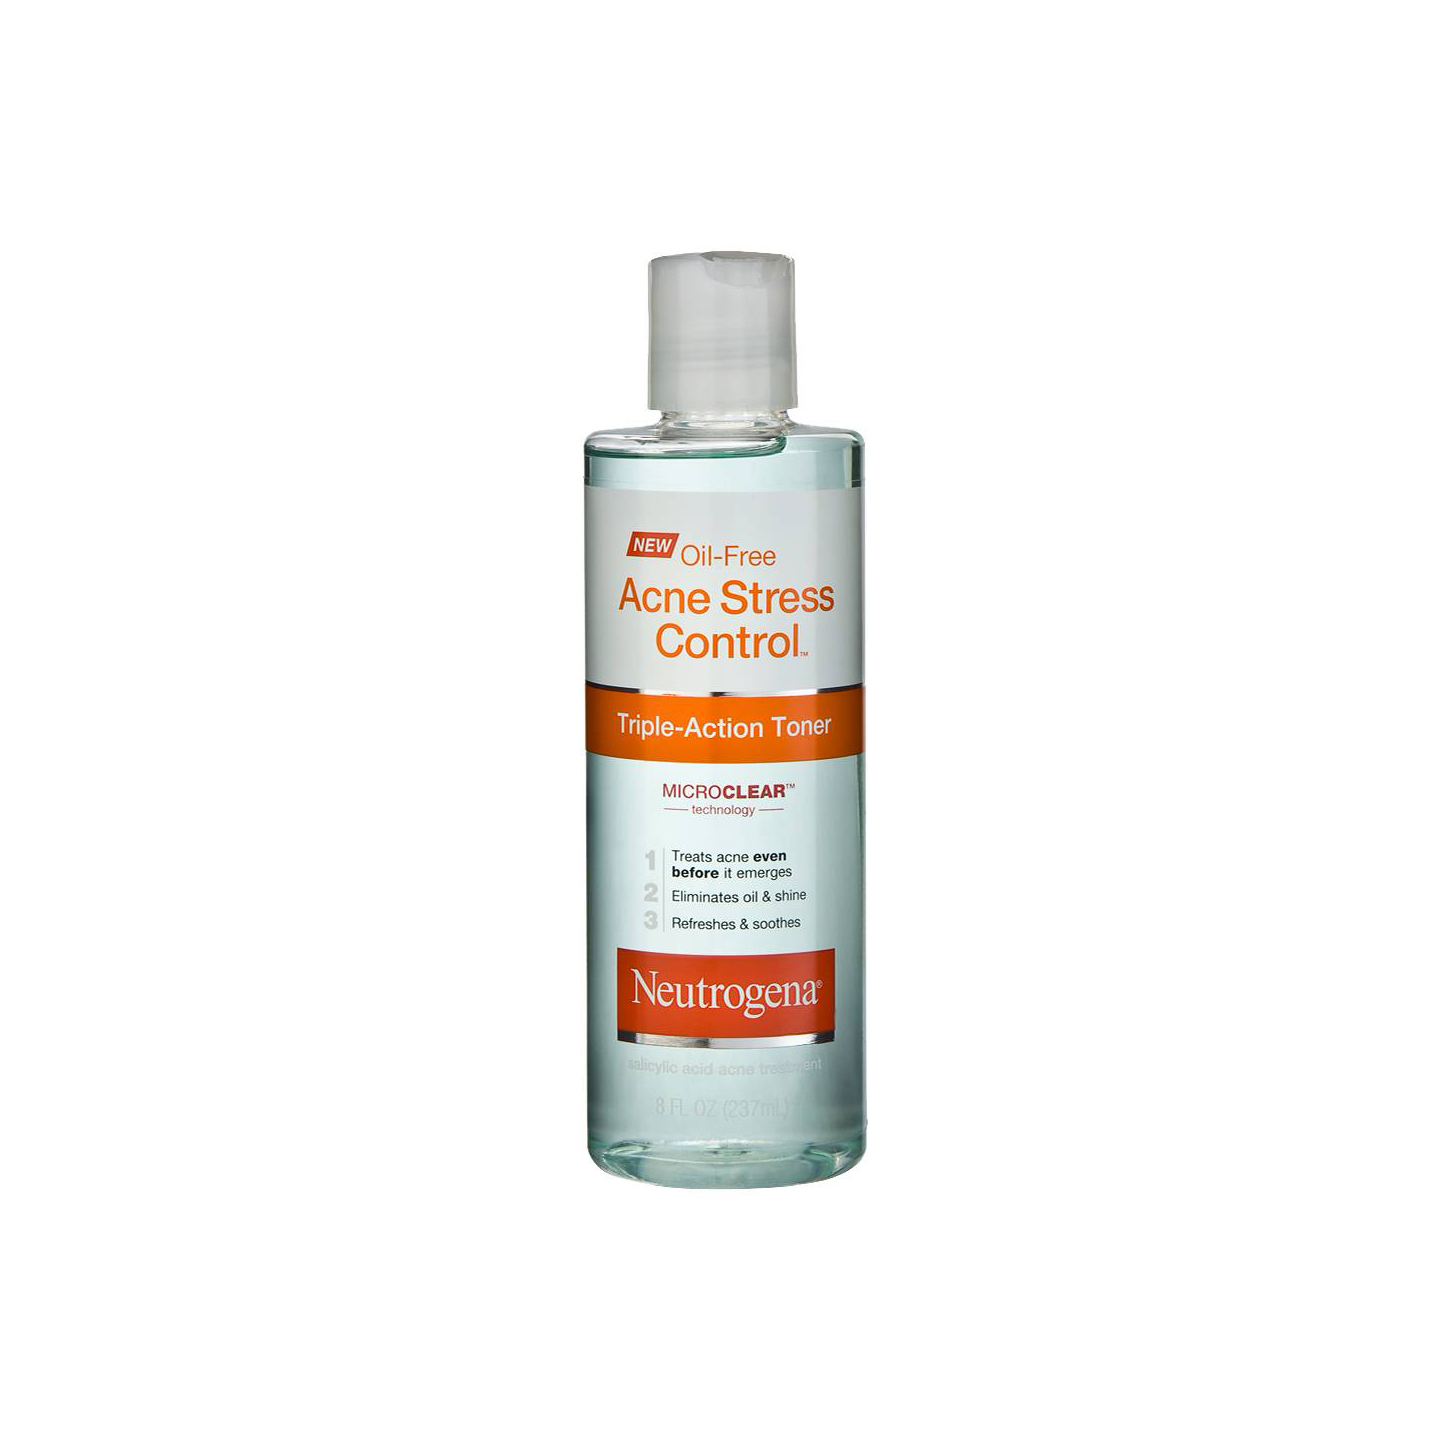 Oil-Free Acne Stress Control Triple-Action Toner